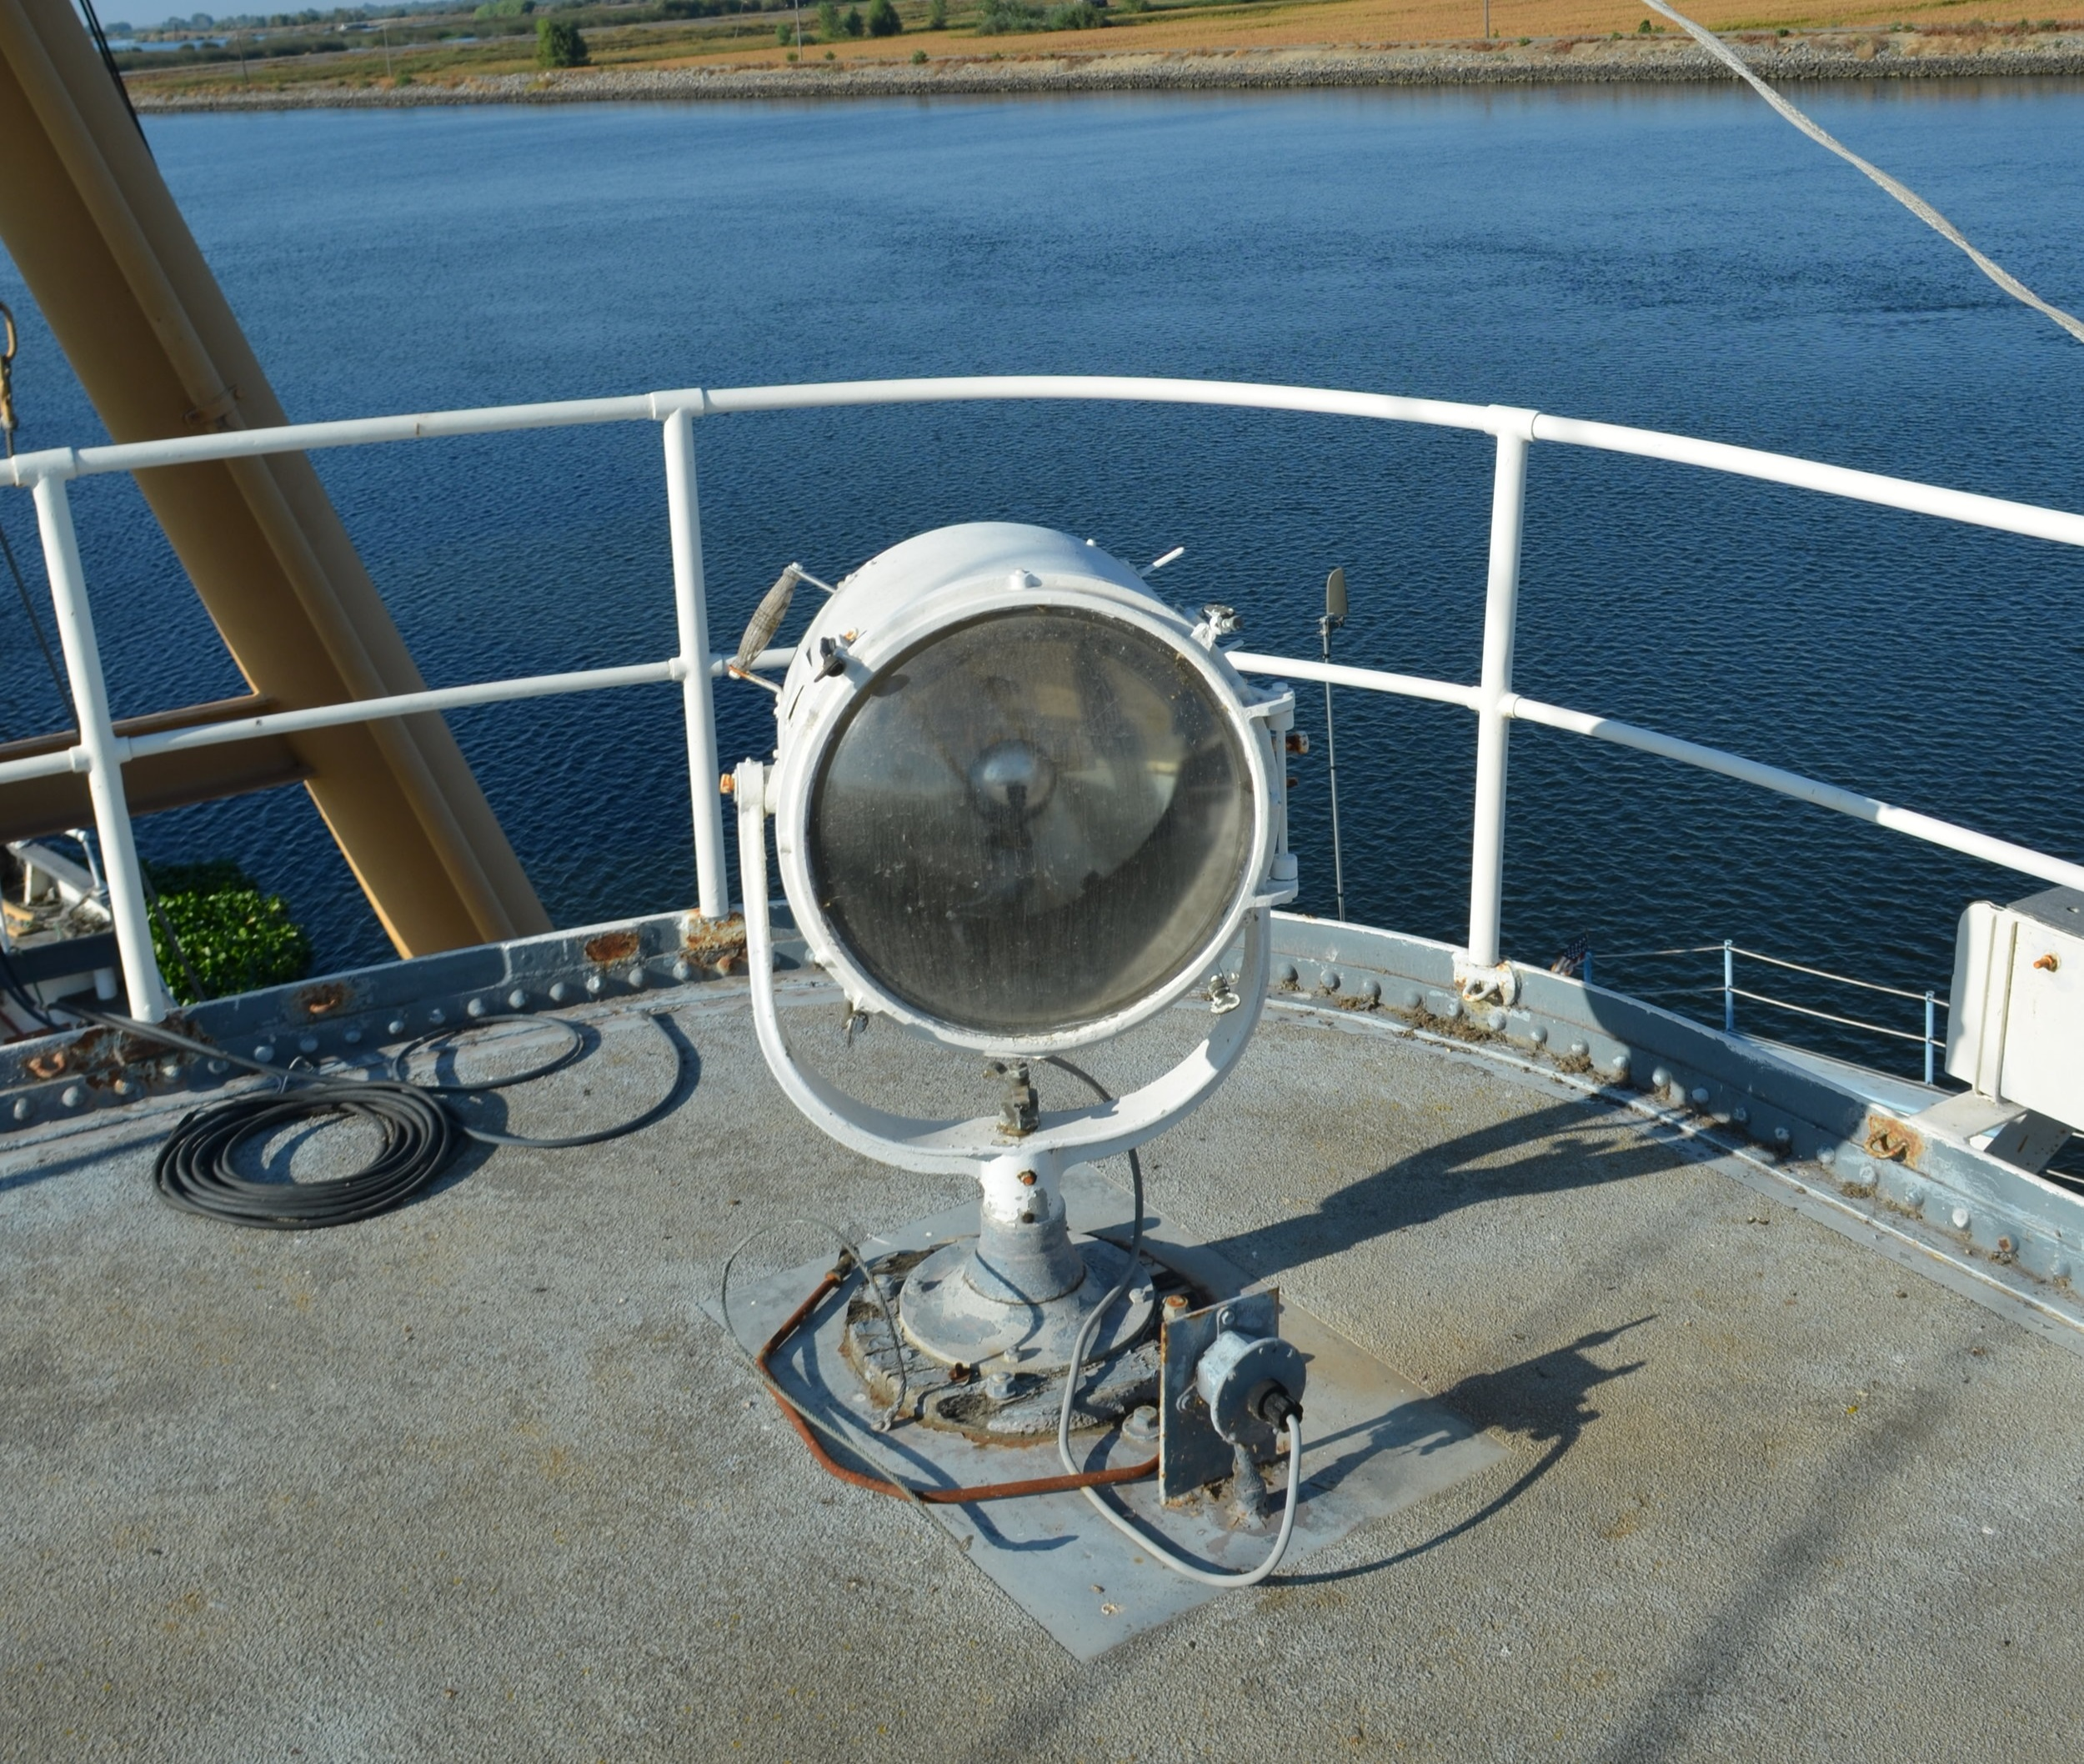 The starboard spotlight as it existed at the time of purchase. Note the vertical control bar detached and sitting on the deck.